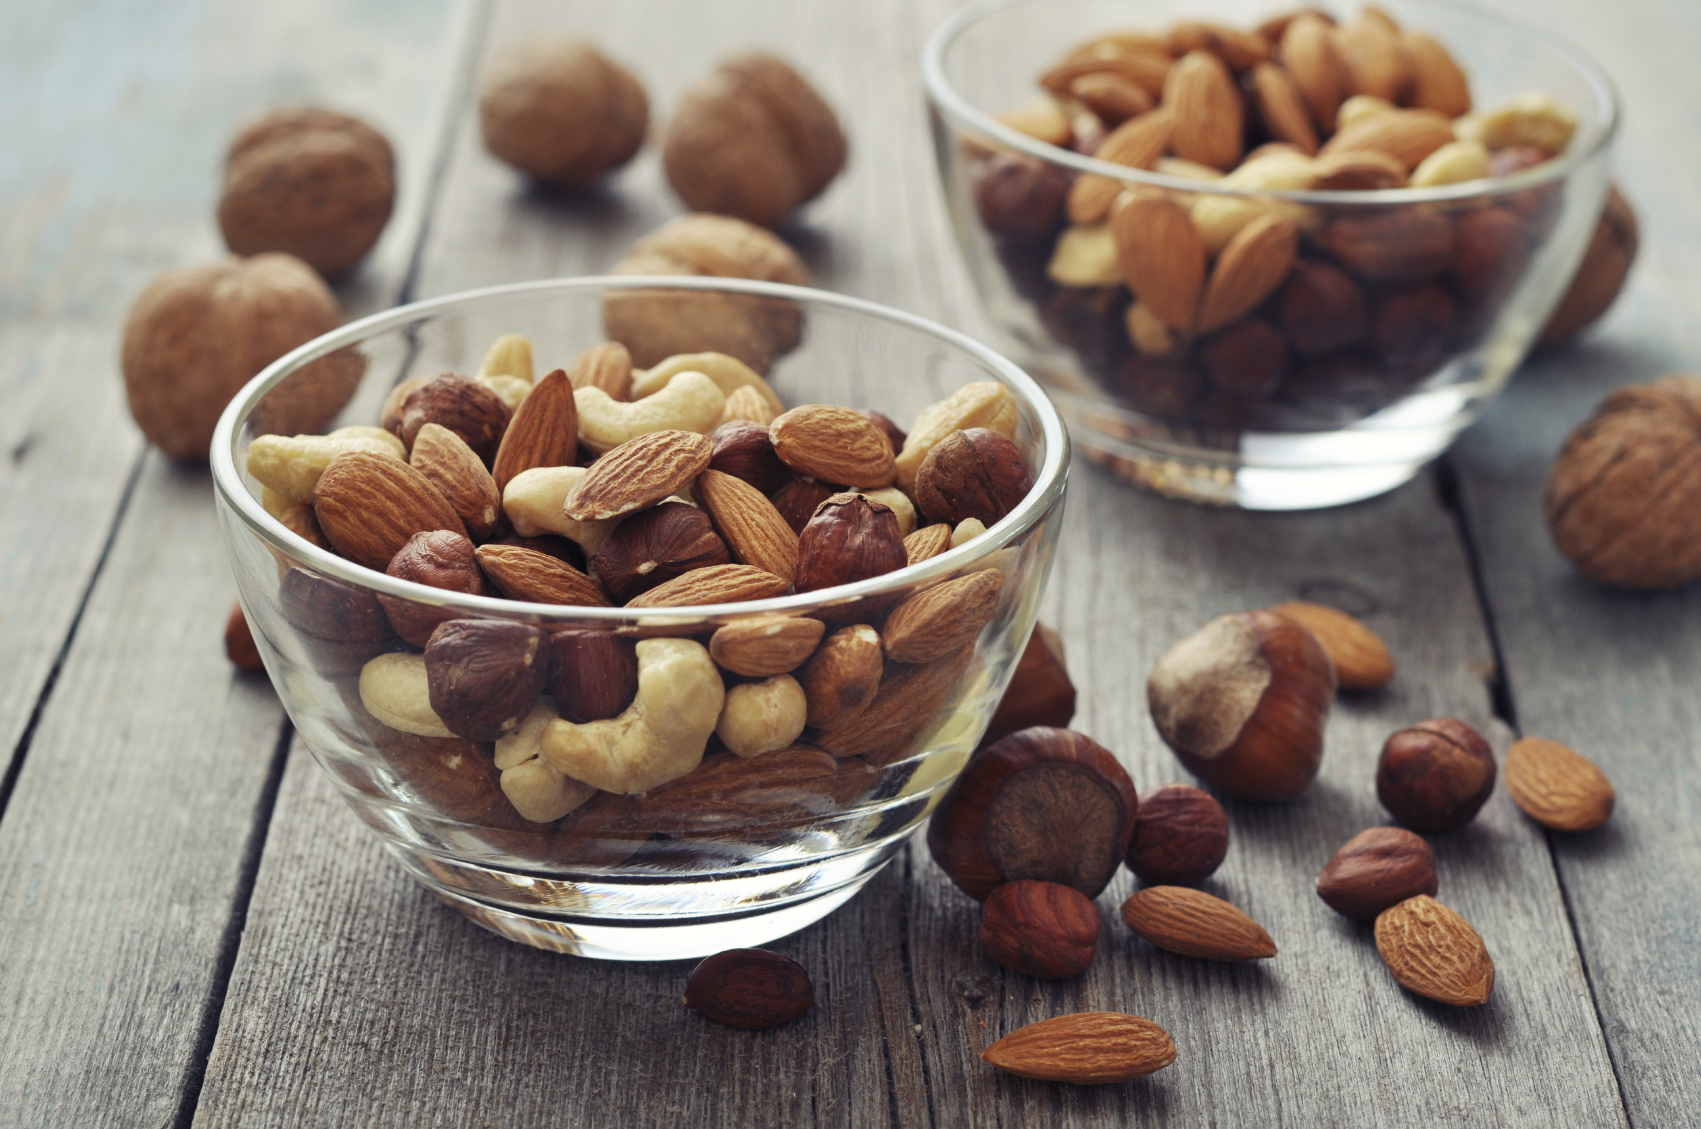 Eating these may be the easiest thing you do today to help add years to your life. Research shows this healthy snack may reduce all-cause mortality risk by 20%.